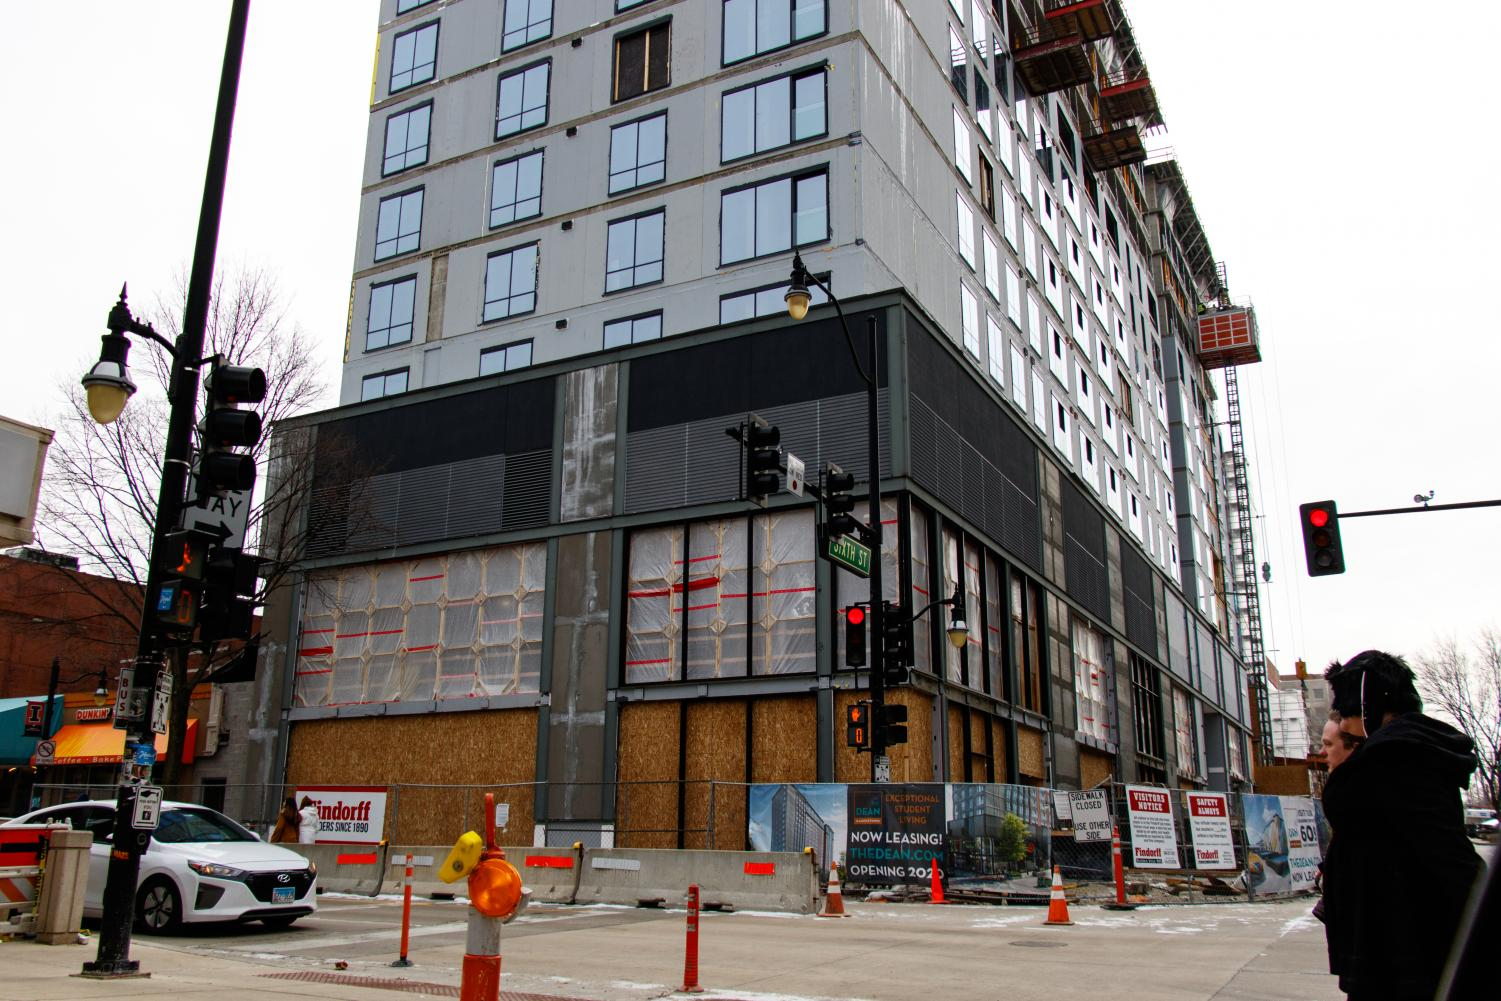 A Target is being built on the first floors of a high rise apartment building on the corner of Fifth and Green streets. With development booming in the Champaign-Urbana area, many businesses like Trader Joe's are considering moving to the area.